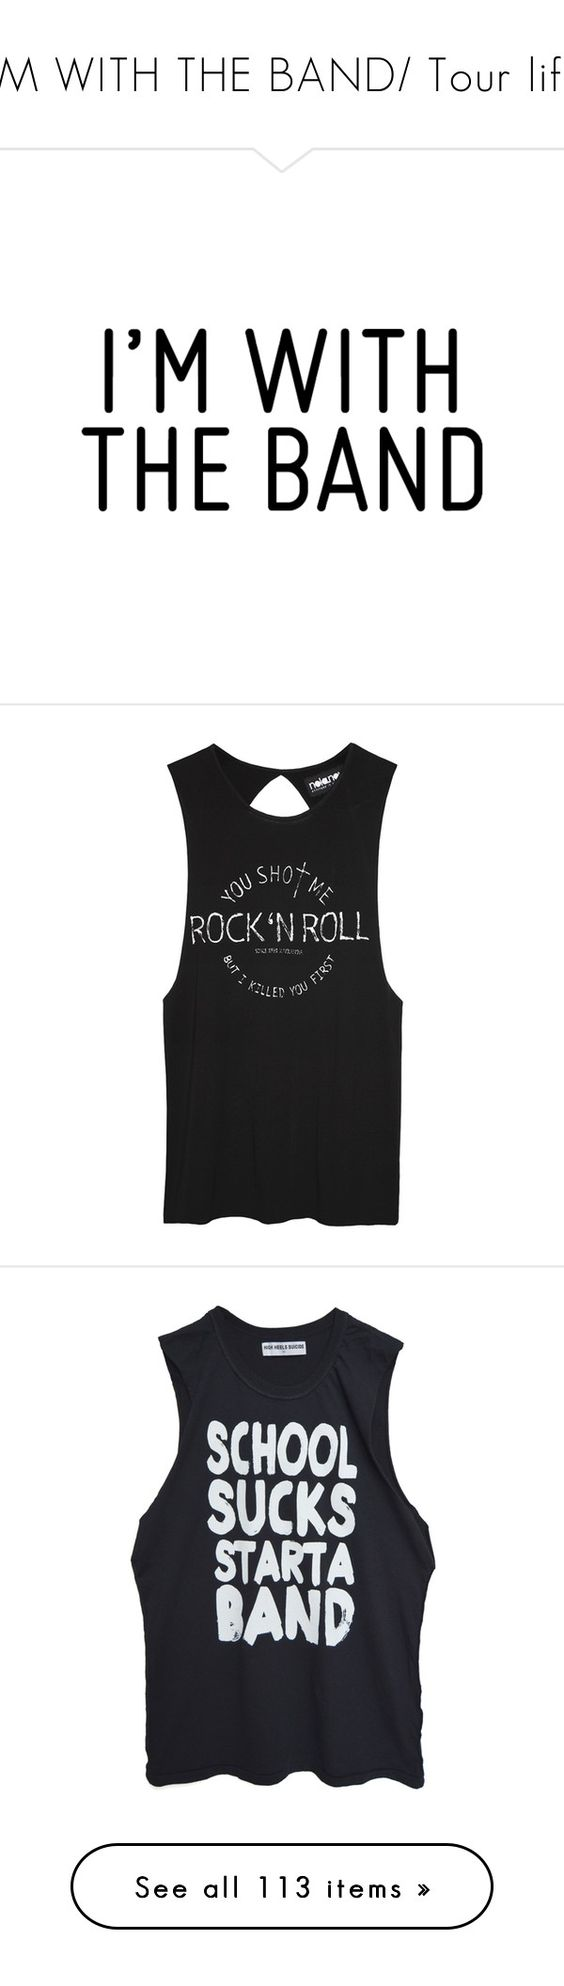 """""""i'M WITH THE BAND/ Tour life"""" by drunk-inlove ❤ liked on Polyvore featuring tops, shirts, tank tops, tanks, sexy shirts, sexy tops, off white shirt, muscle t shirt, rock n roll shirts and women"""